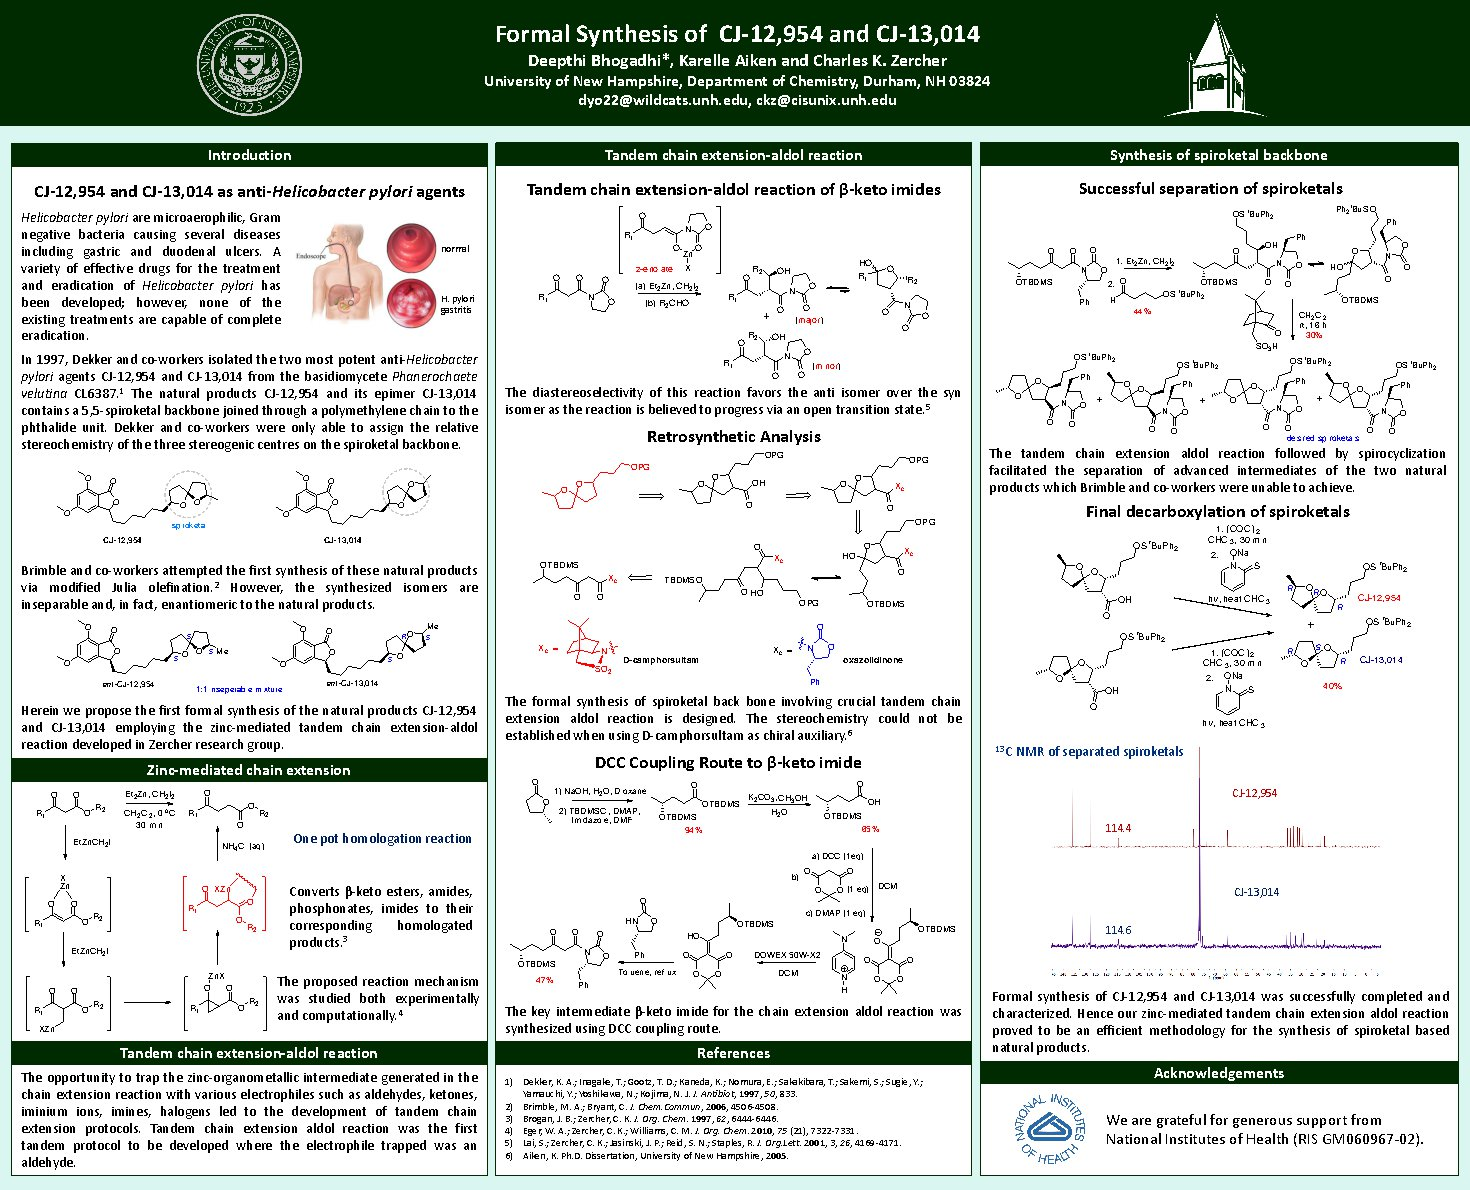 Formal Synthesis Of Cj-12,954 And Cj-13,014 by Deepthi